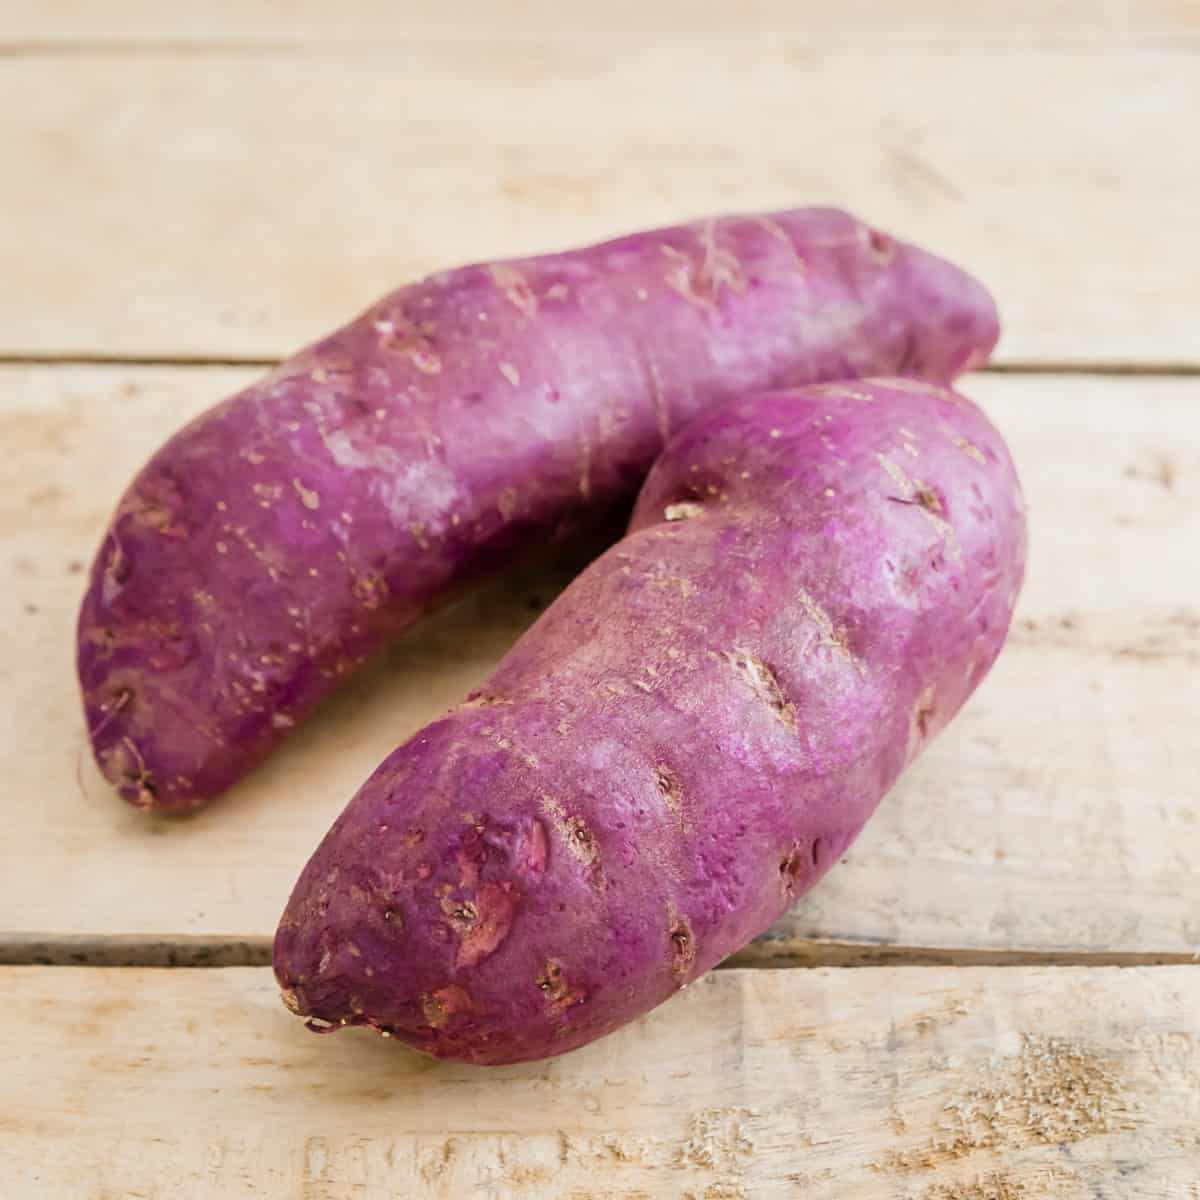 Stokes purple sweet potatoes